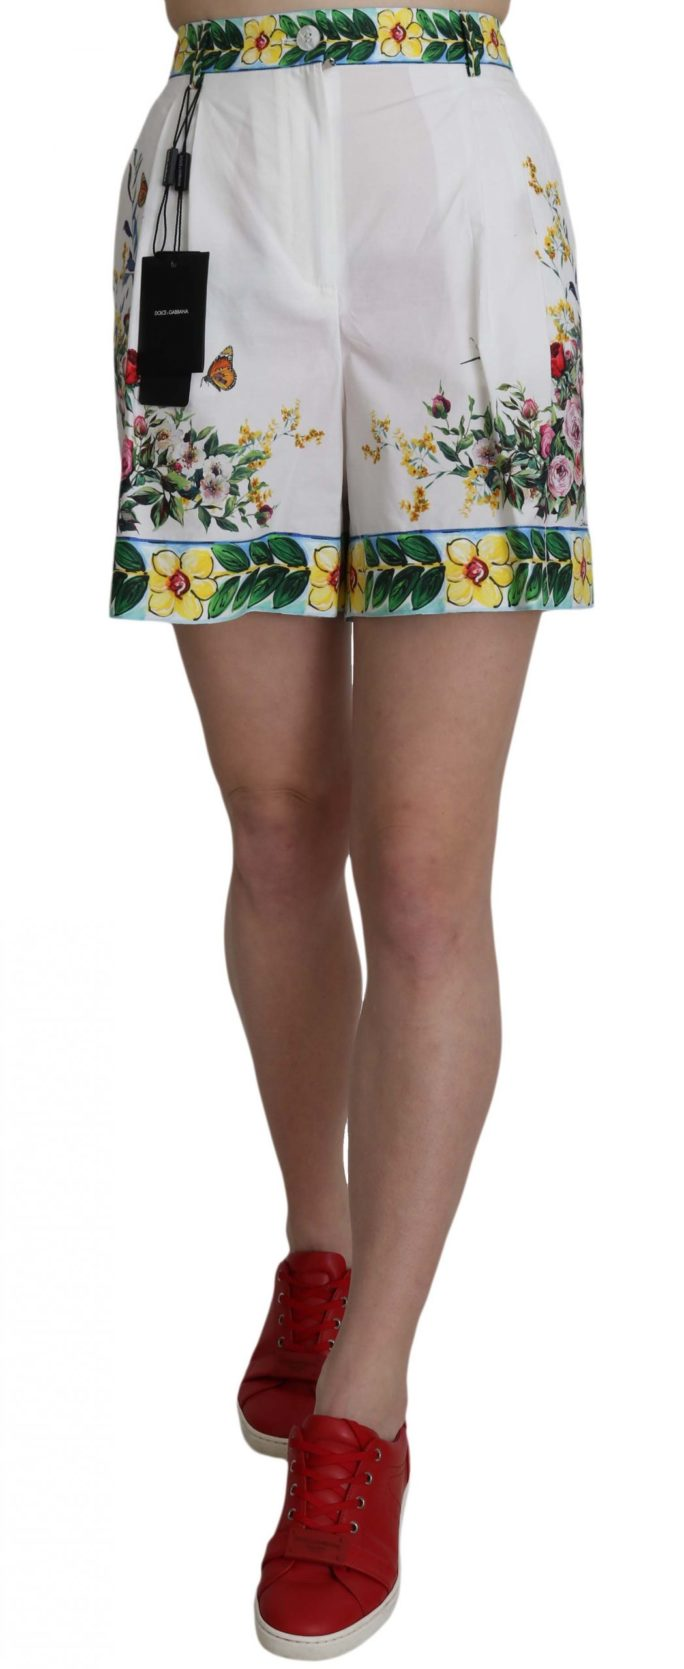 658075 Majolica Rose White Floral Print Cotton Shorts.jpg